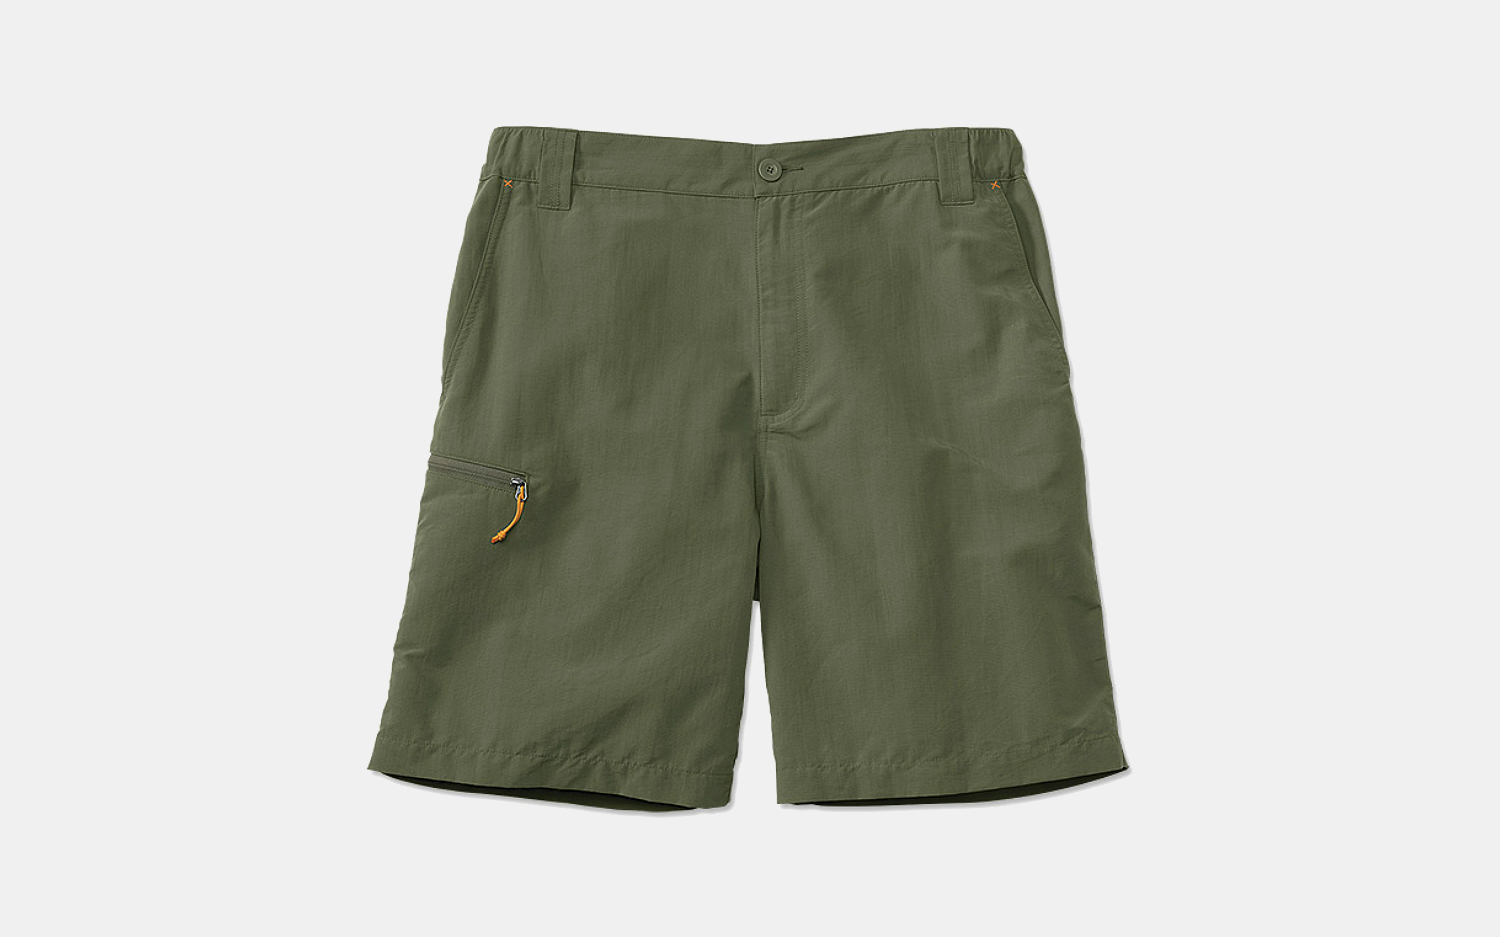 Orvis Jackson Quick-Dry Shorts